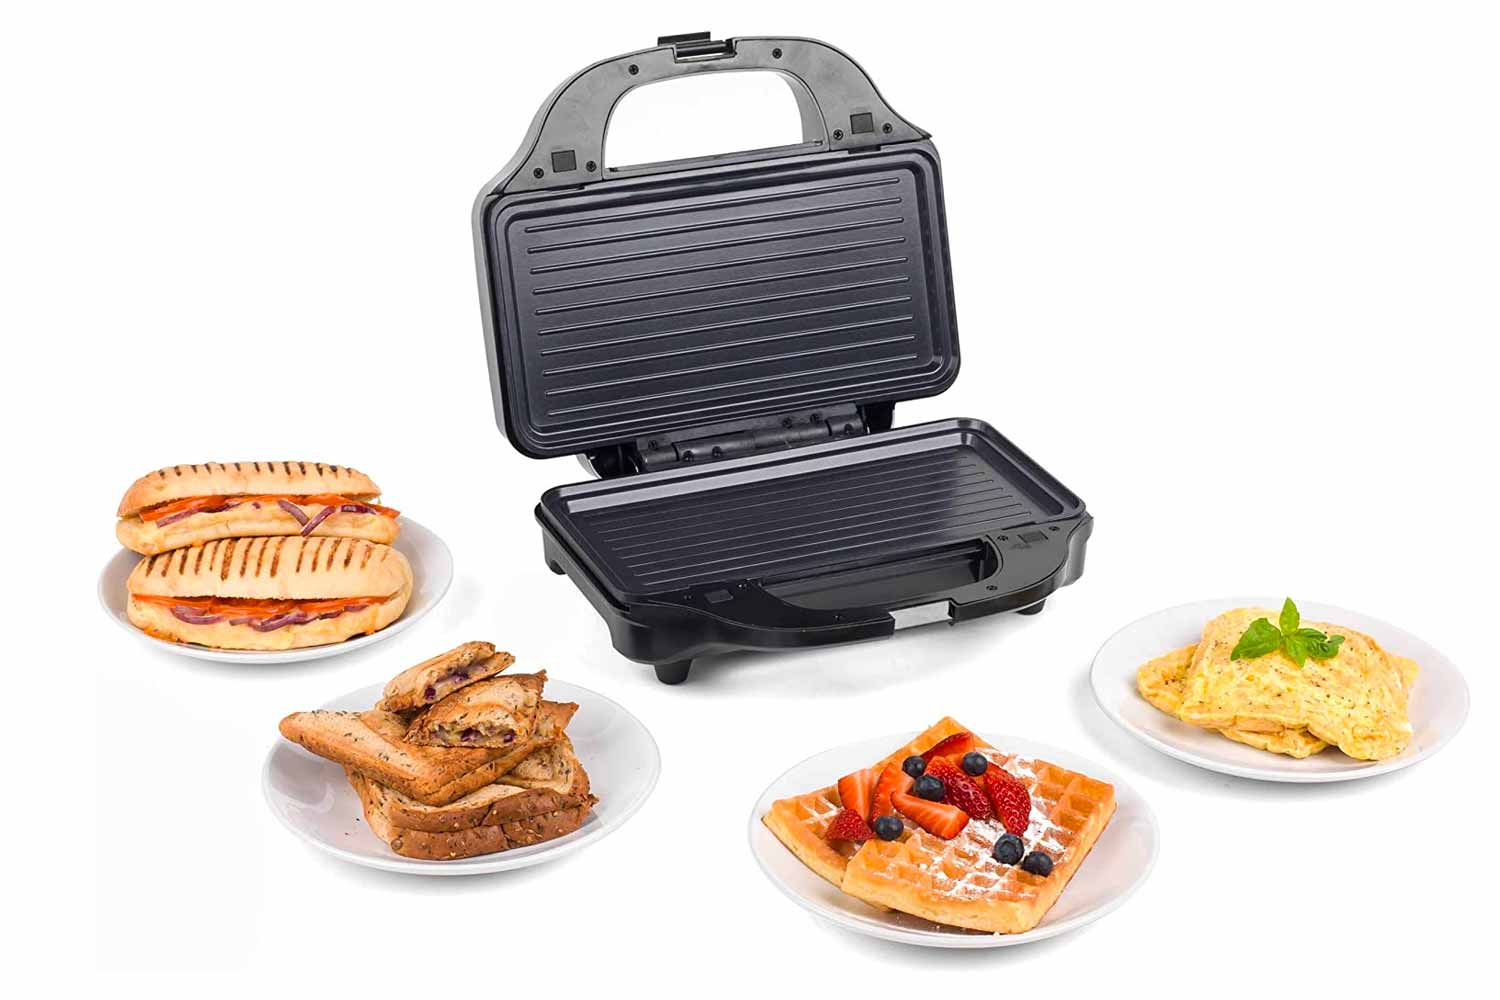 Salter EK2143FOUR XL 4-in-1 Snack Maker with Waffle, Panini, Toastie and Omelette Plates, 900 W, Stainless Steel